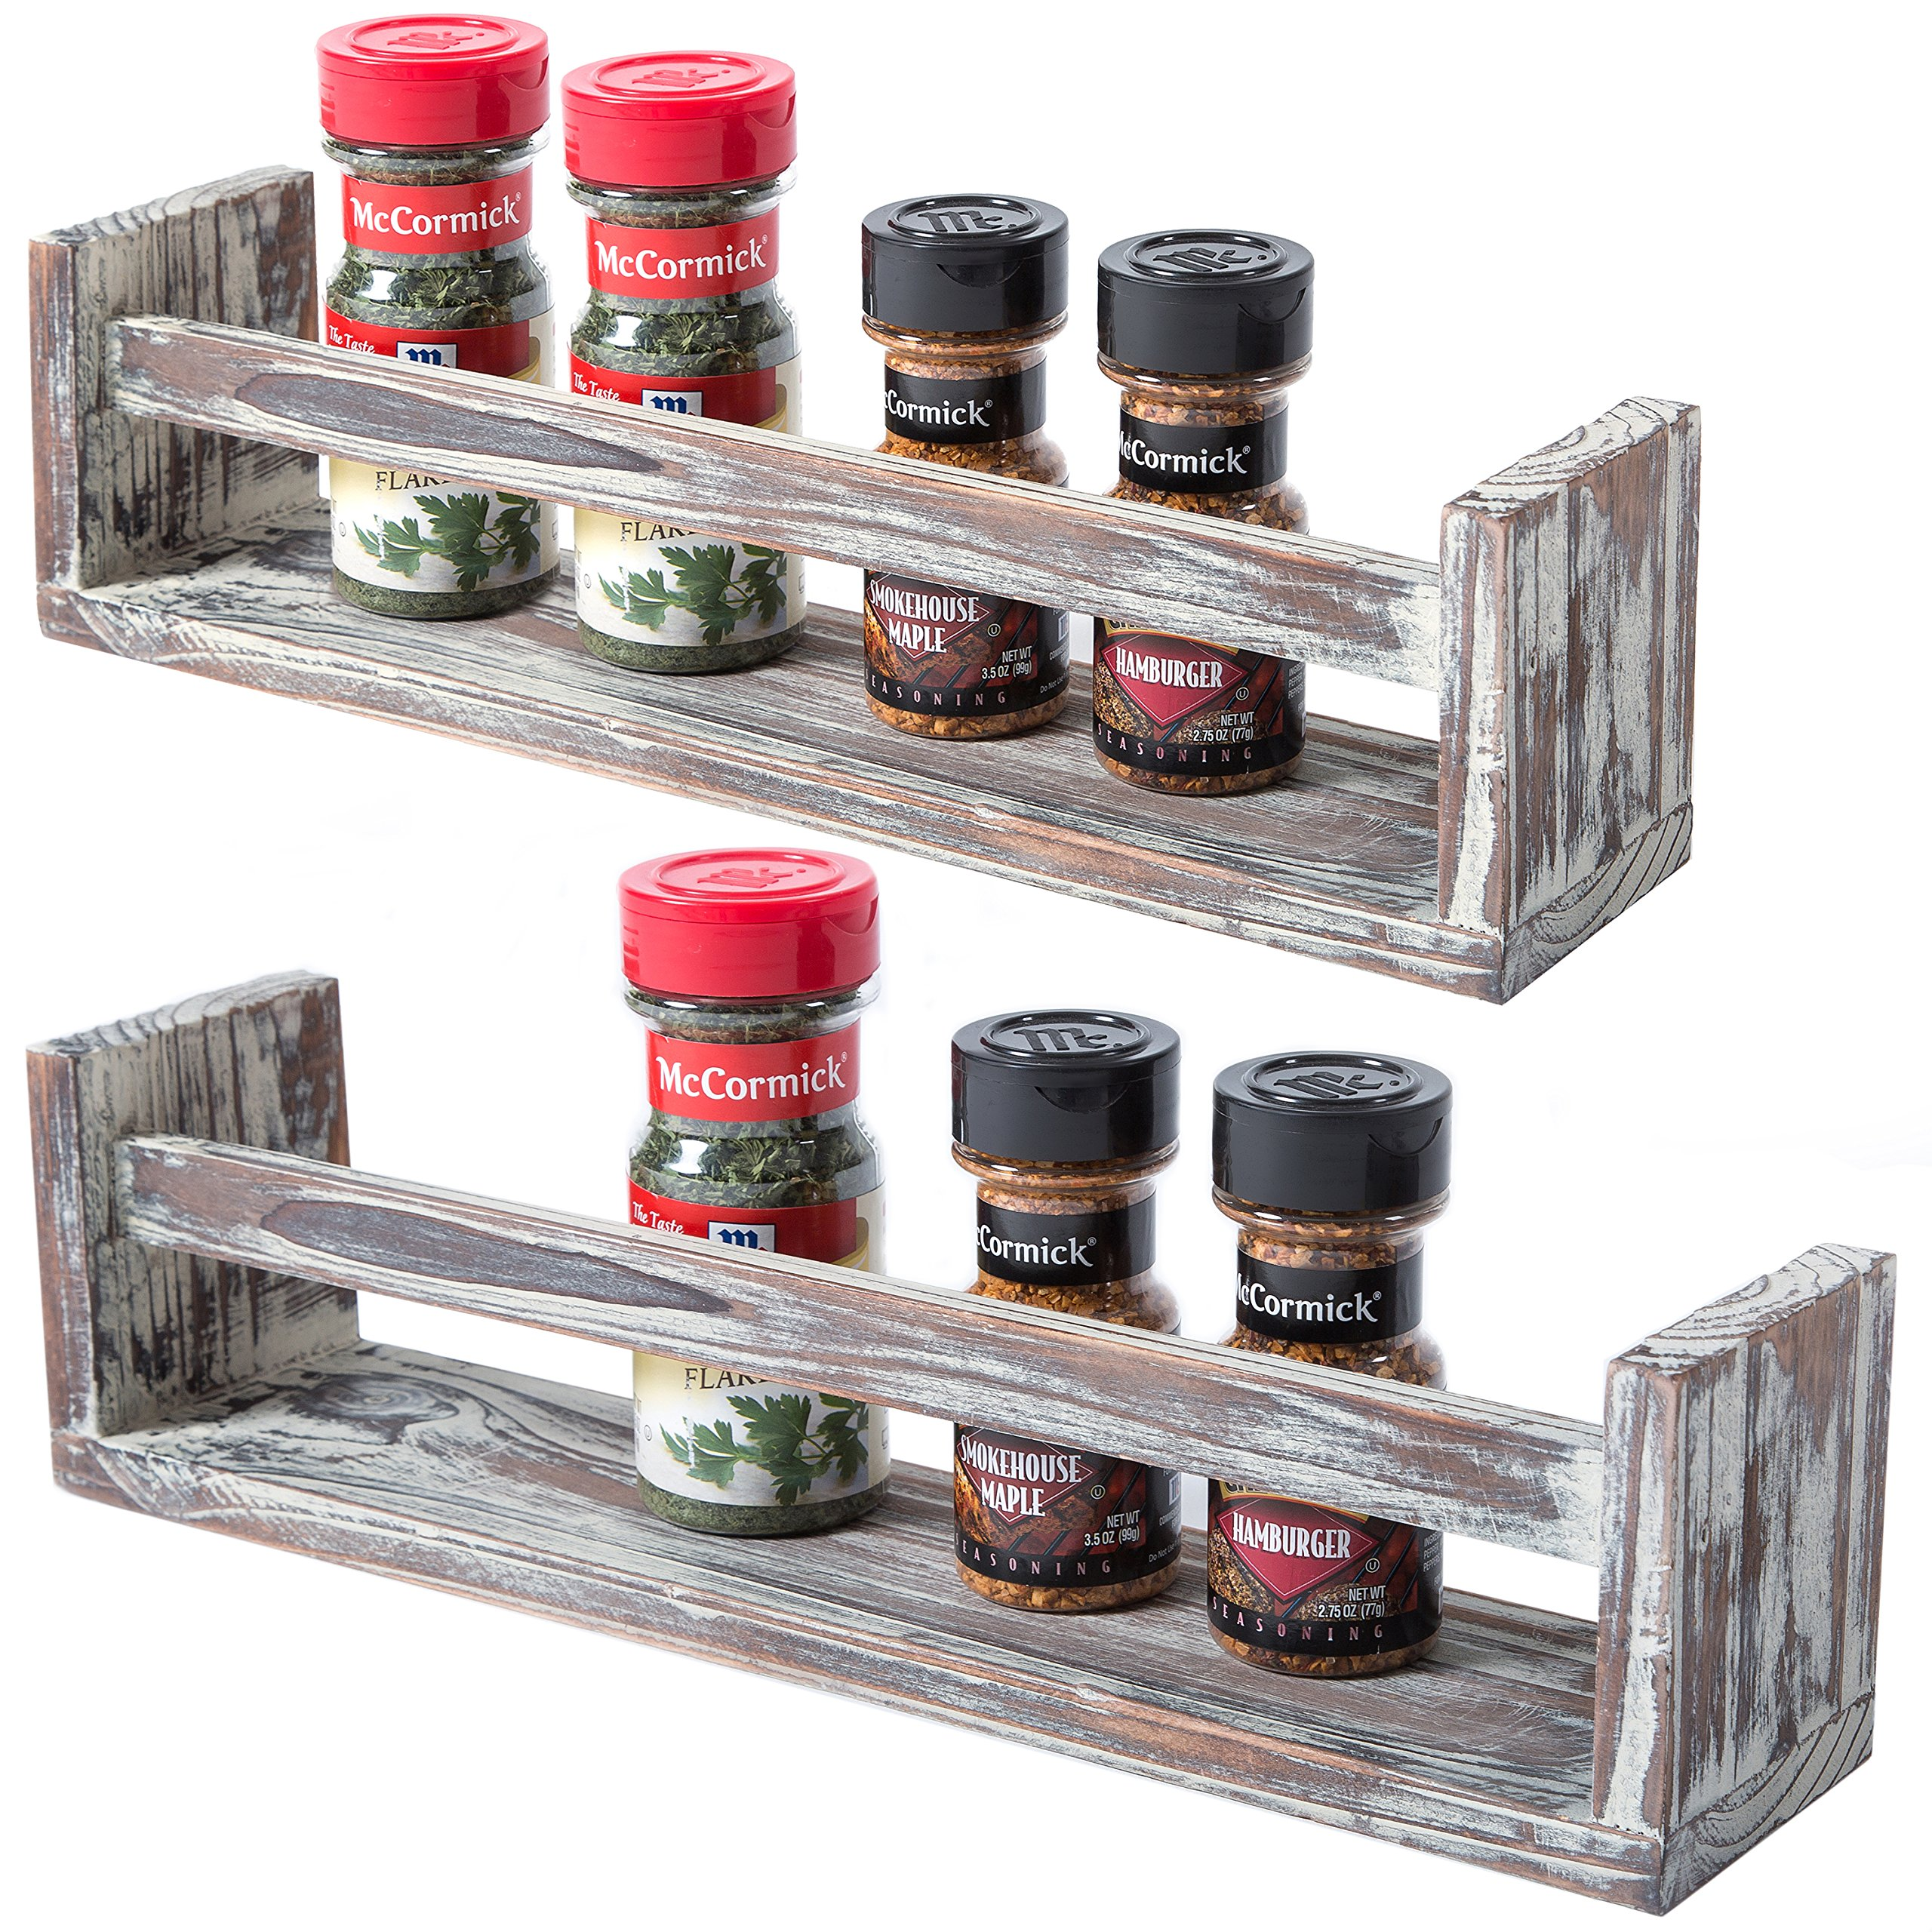 Set of 2 Wall Mounted Dark Brown Torched Wood Finish Spice Racks, Kitchen Storage Shelves